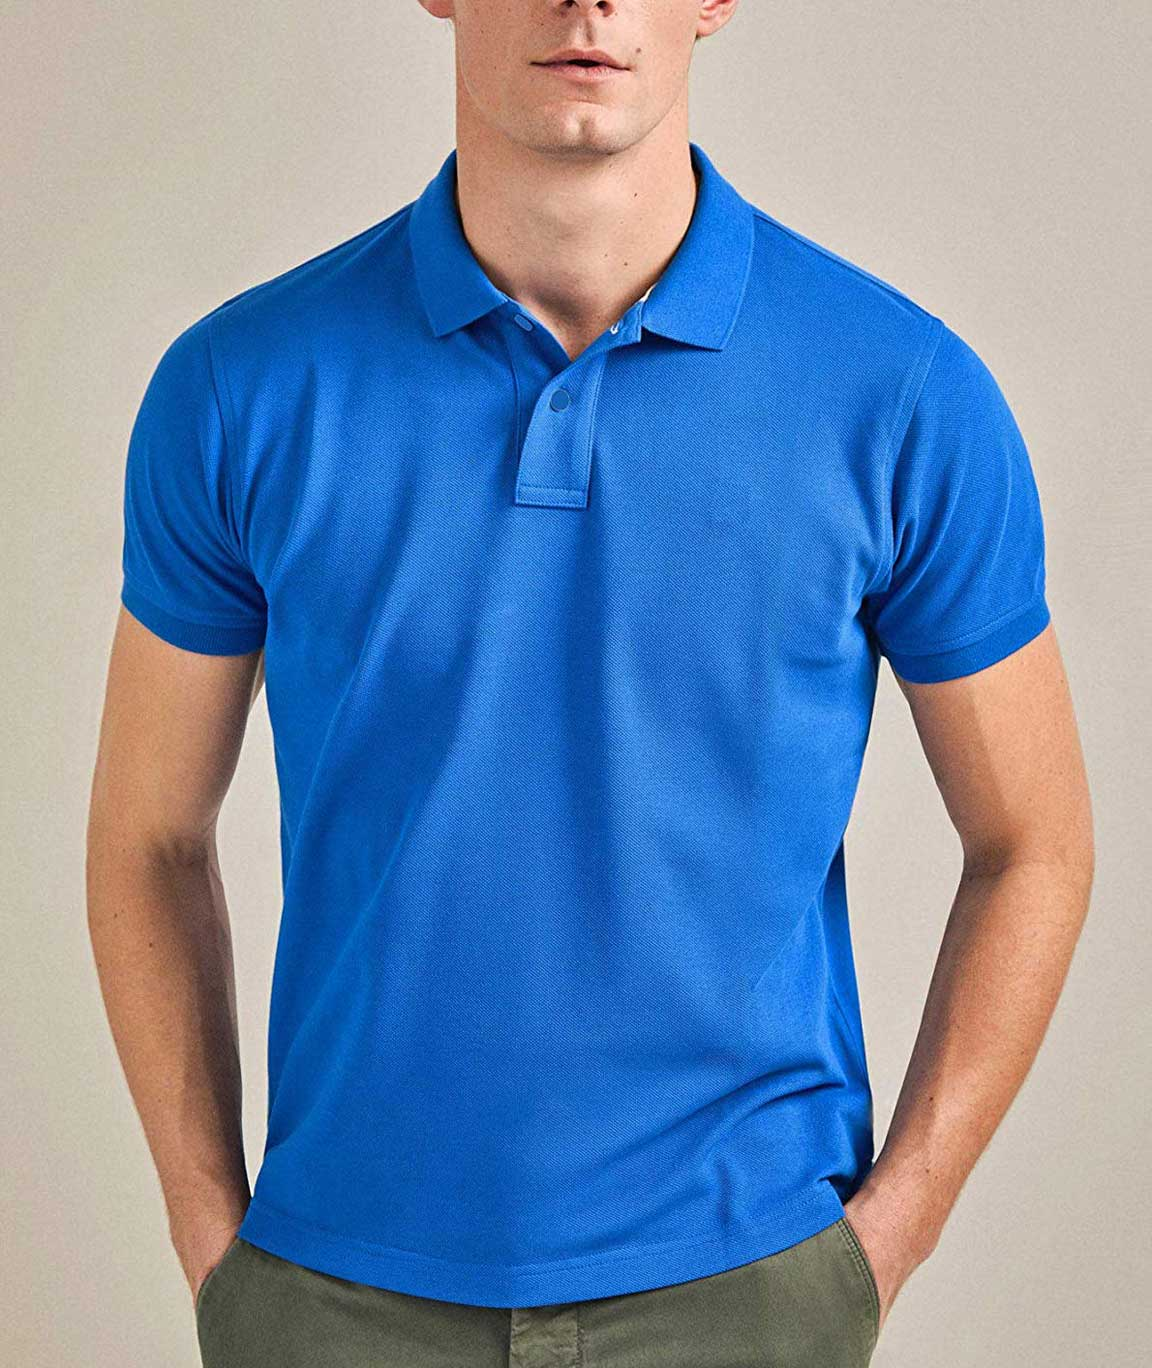 Vestiario Cotton Blended Polo Neck T-Shirt- 6 Colour Options